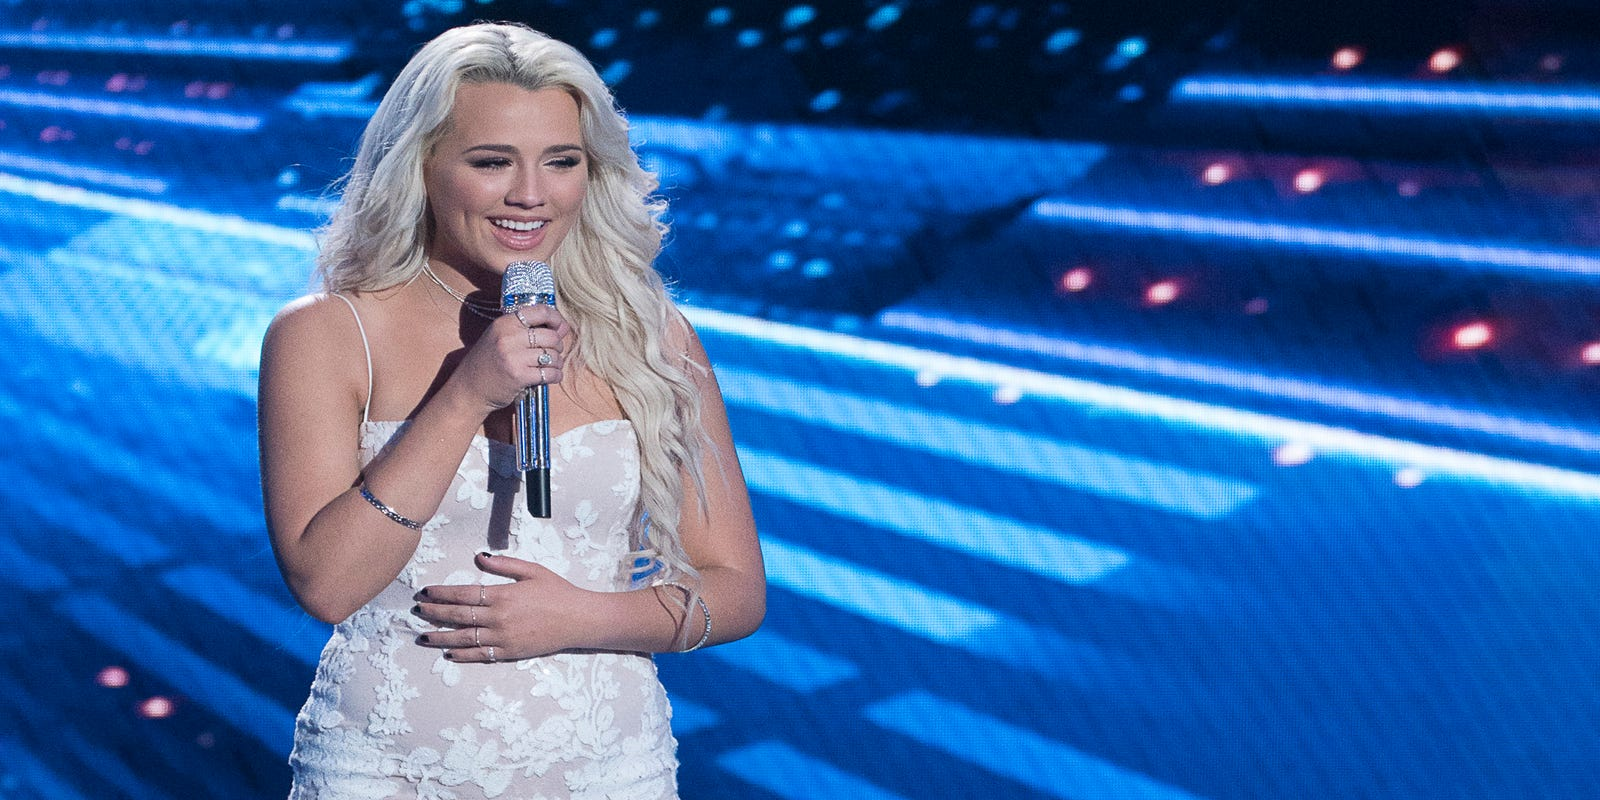 'American Idol' alums Gabby Barrett and Cade Foehner are expecting a baby girl: '#TheNextIdol'